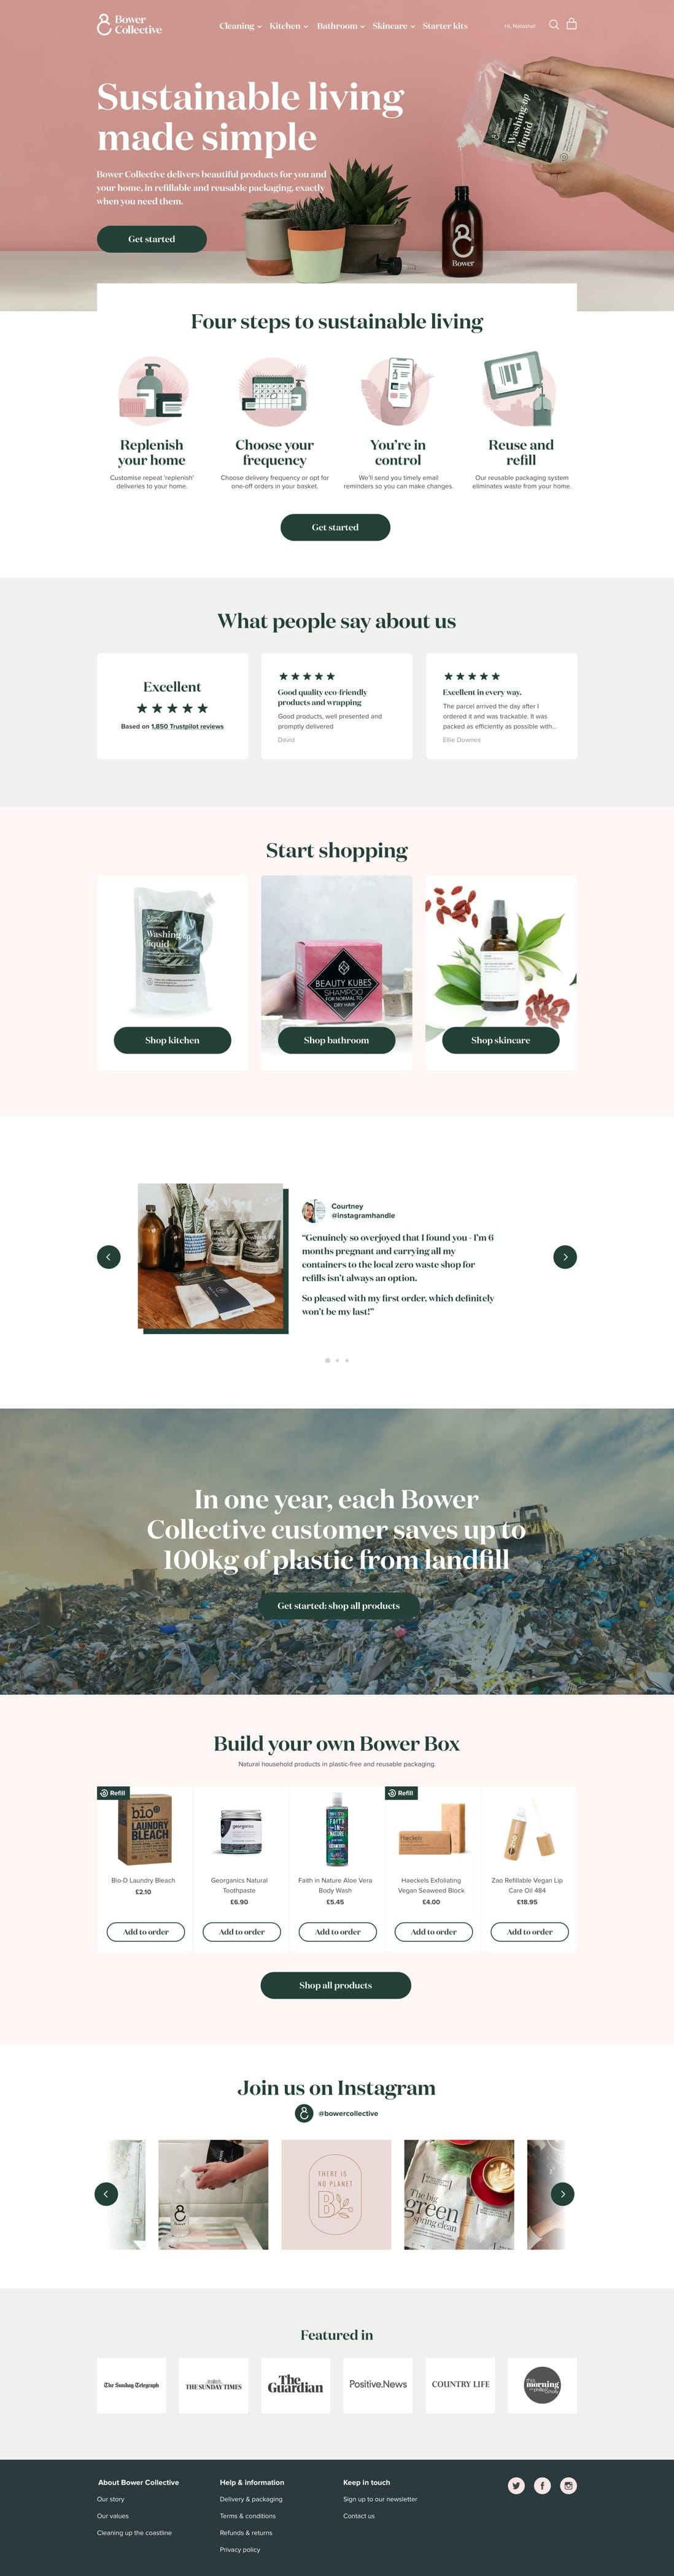 bower_homepage